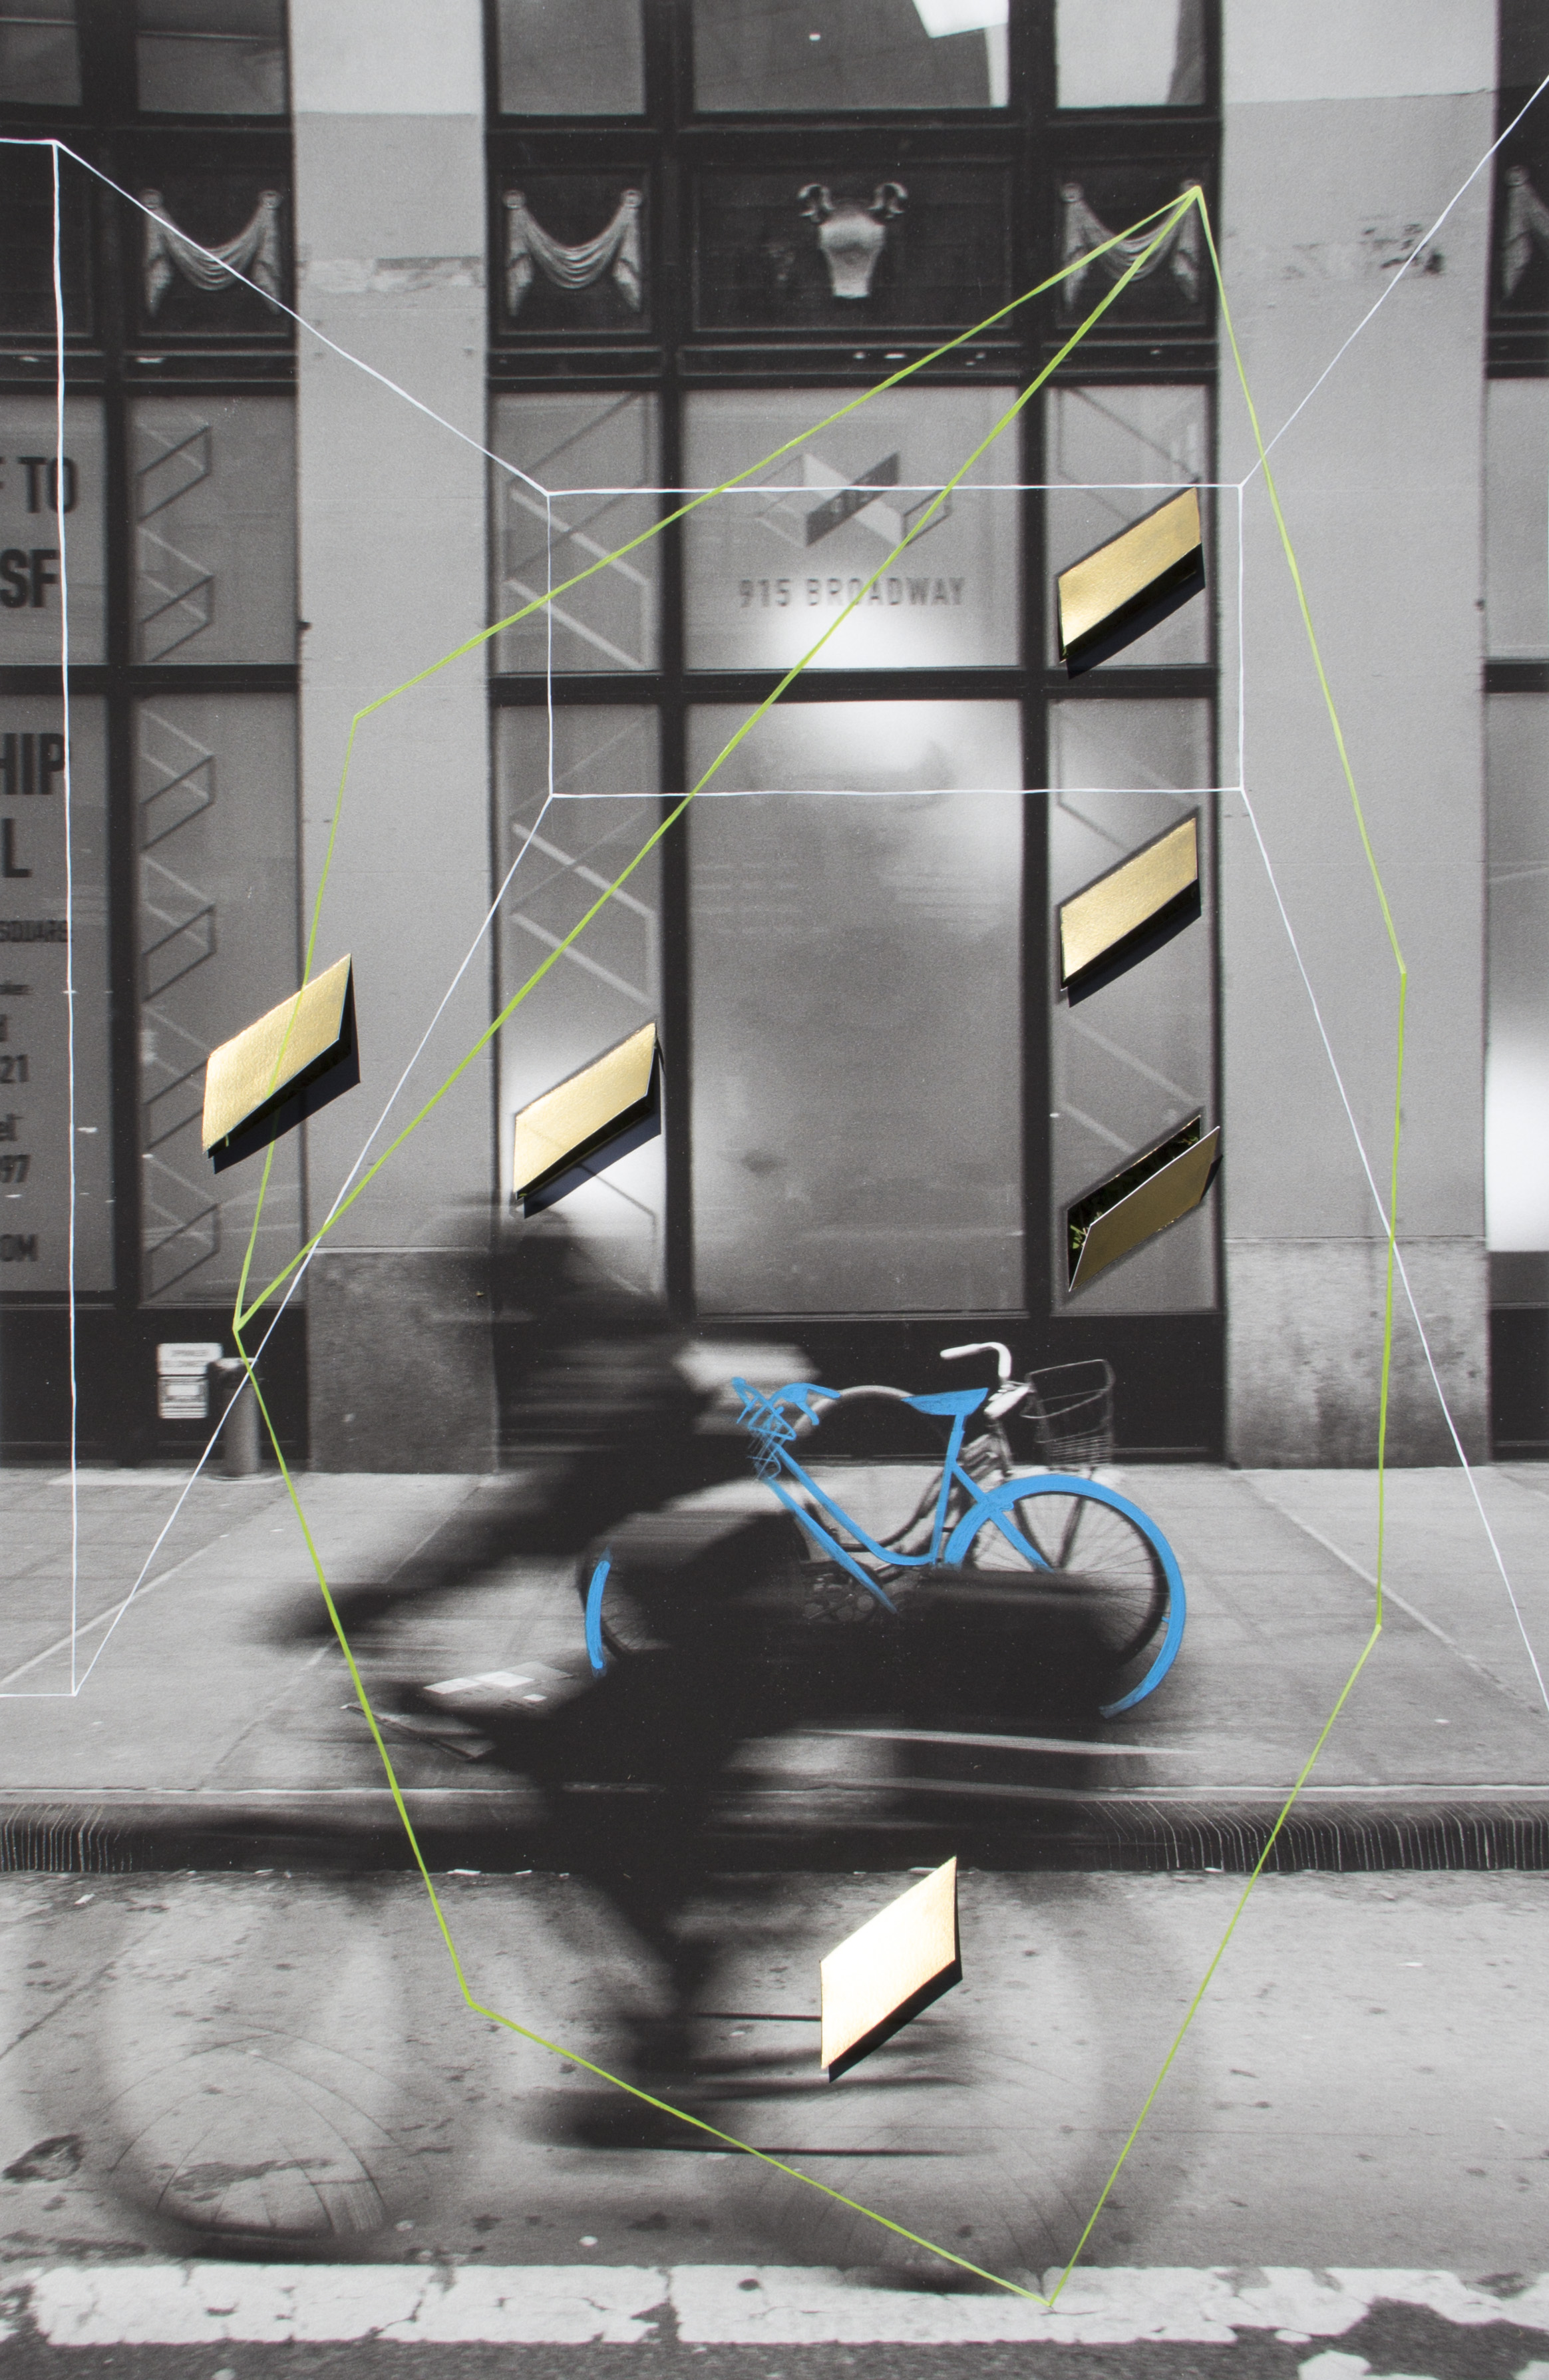 There Bicycles